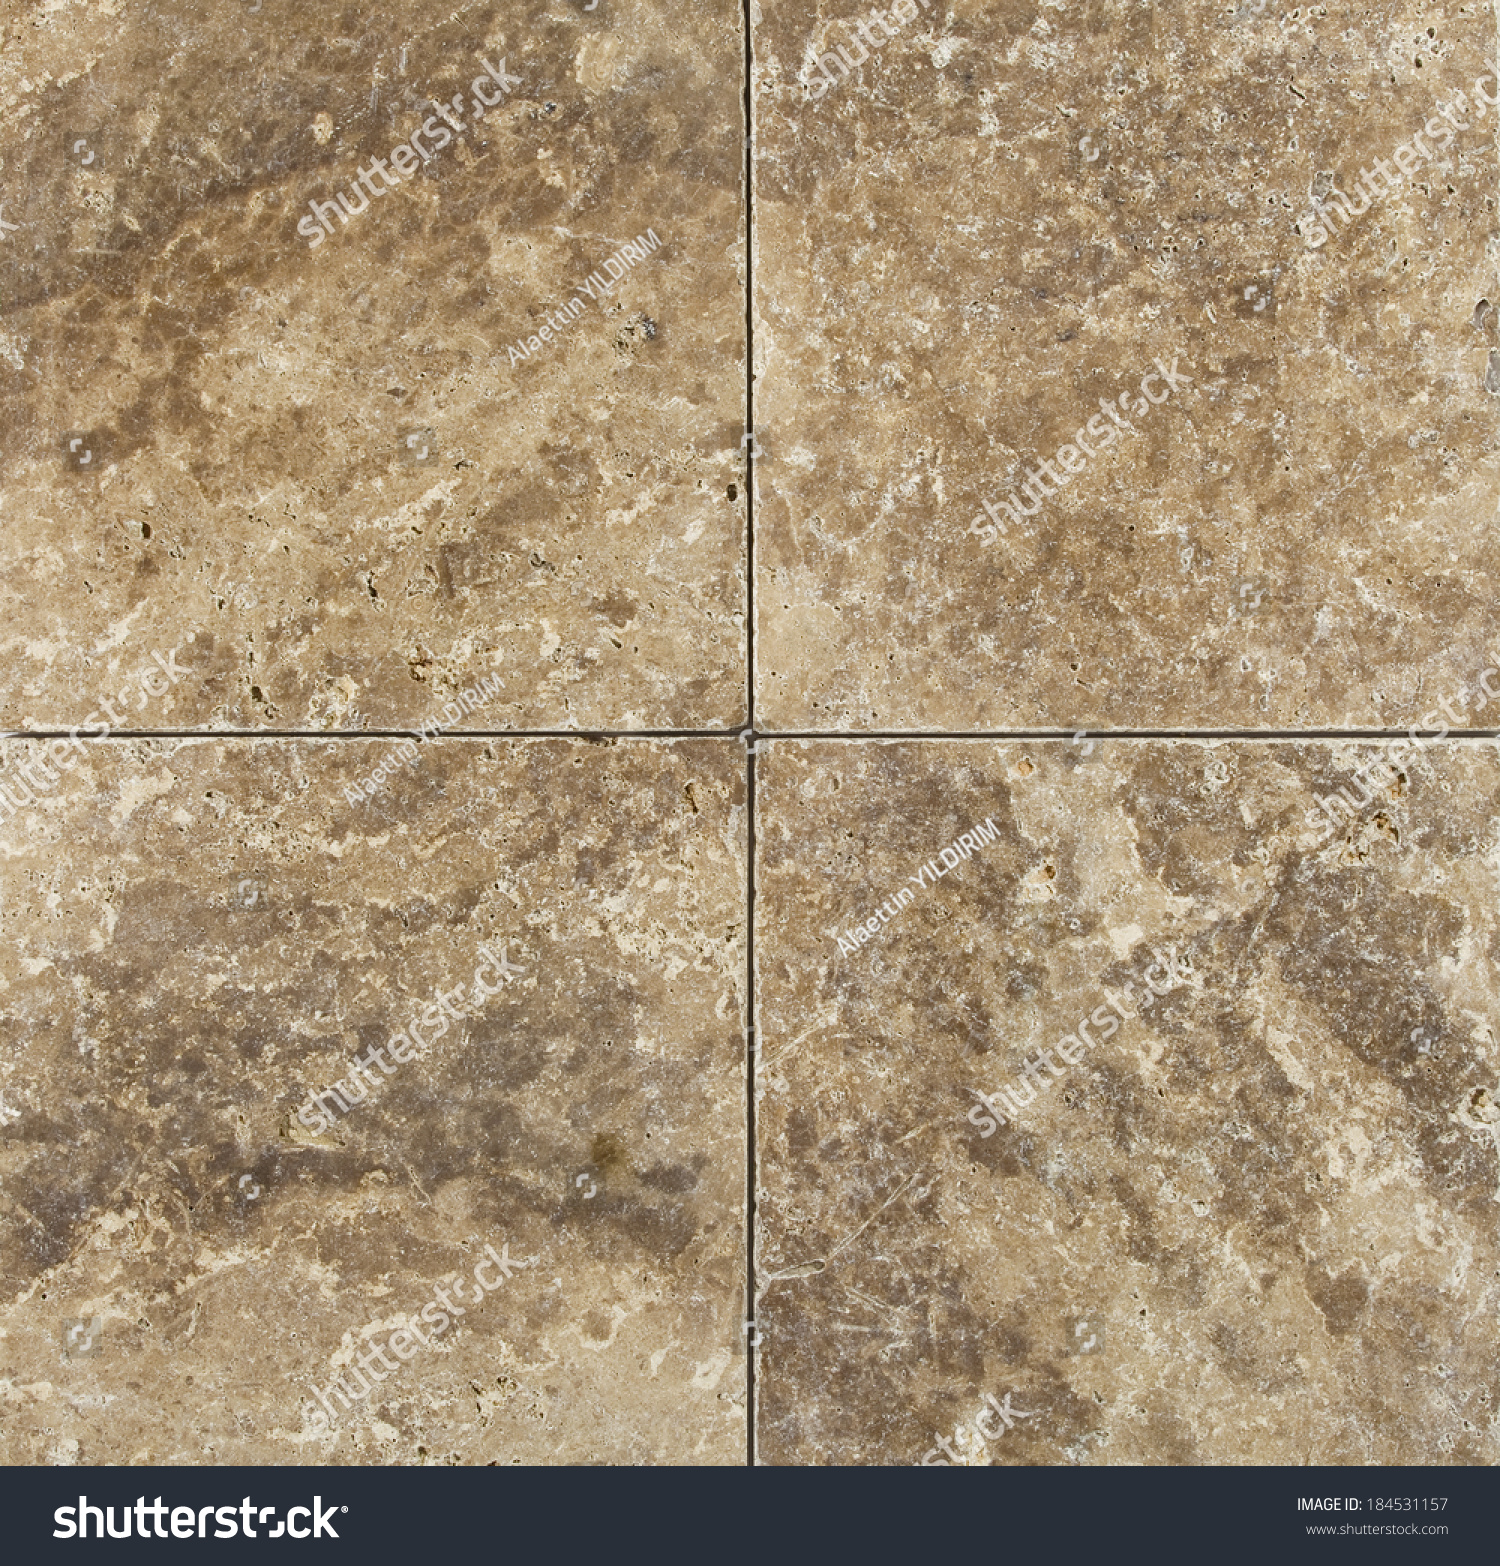 Square marble tiles background stock photo 184531157 shutterstock square marble tiles background dailygadgetfo Images